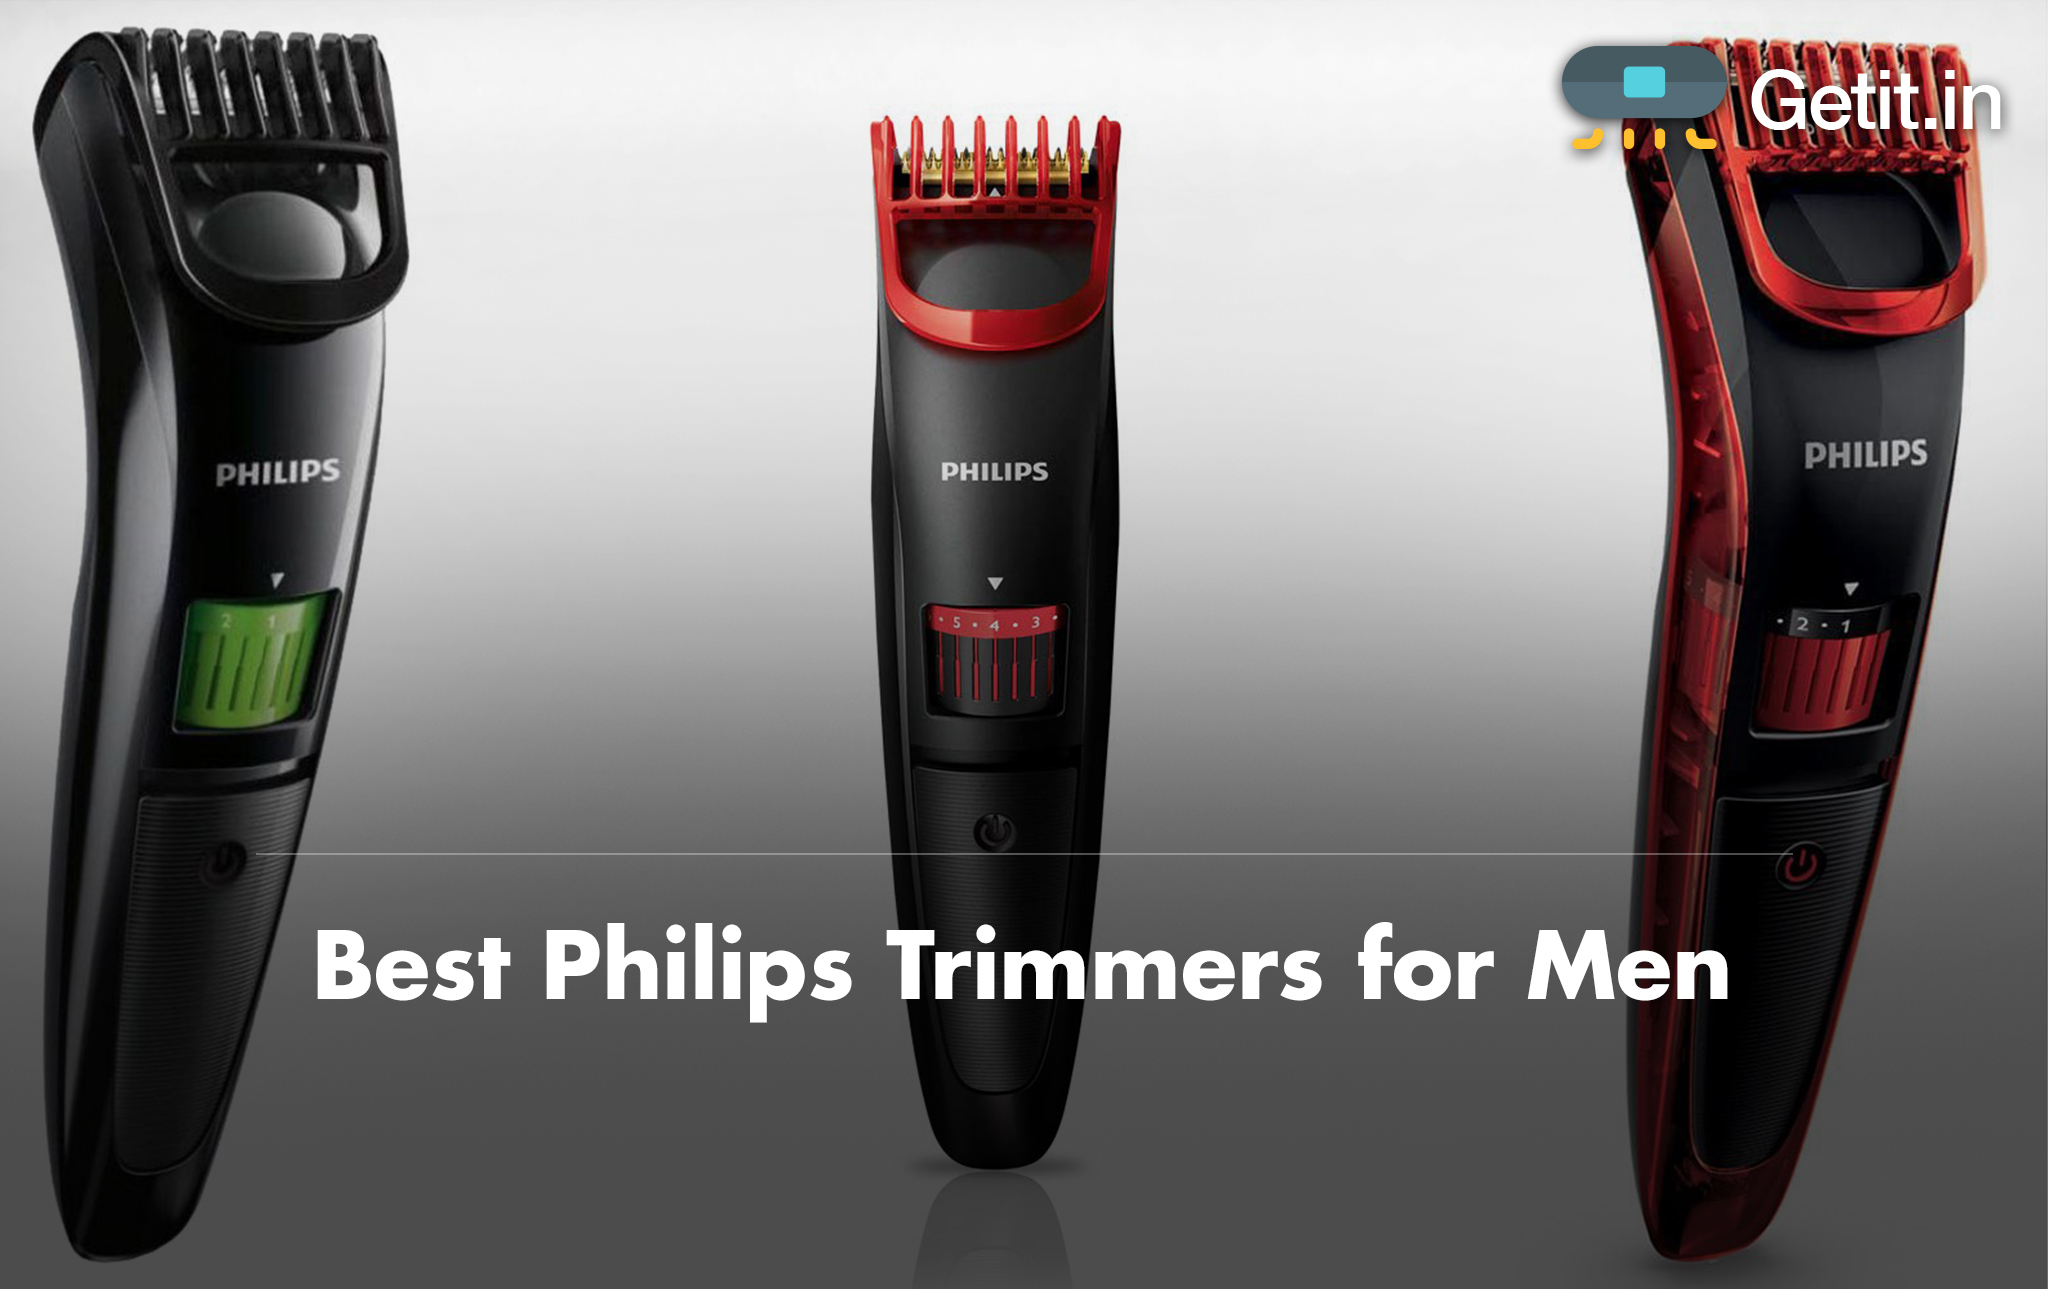 Best Philips Trimmers for Men